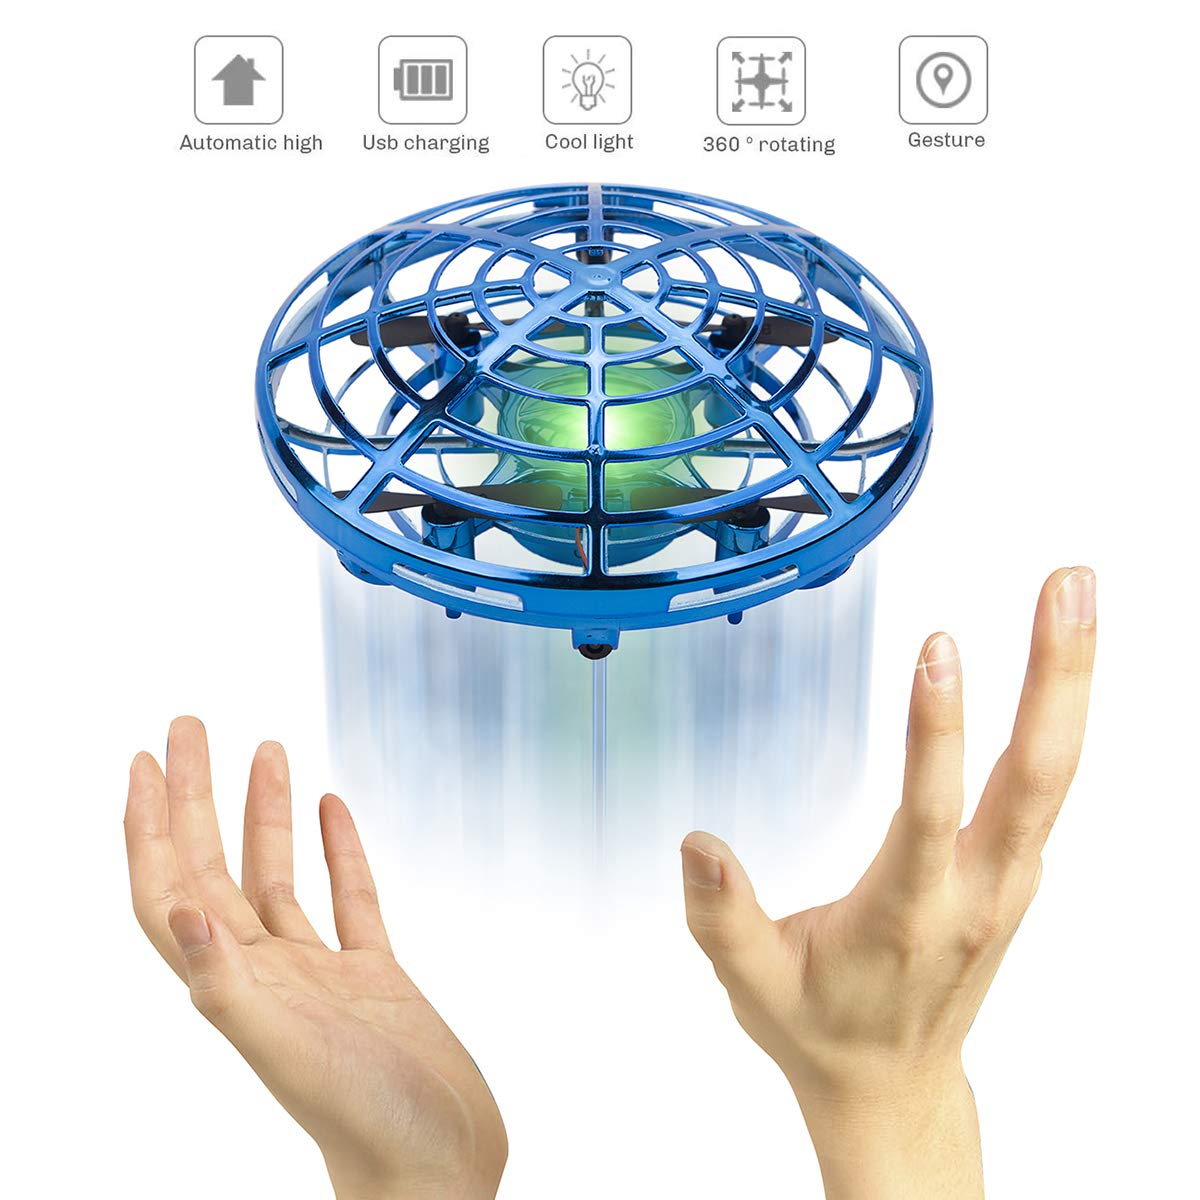 Flying Ball Toy - Sugoiti Mini Drones Quadcopters UFO Aircraft Motion Hand Controlled, Interactive Infrared Induction RC Helicopter with Led Light, Free Hover Automatic Sensing Obstacle, Gift for Kids by Sugoiti (Image #7)